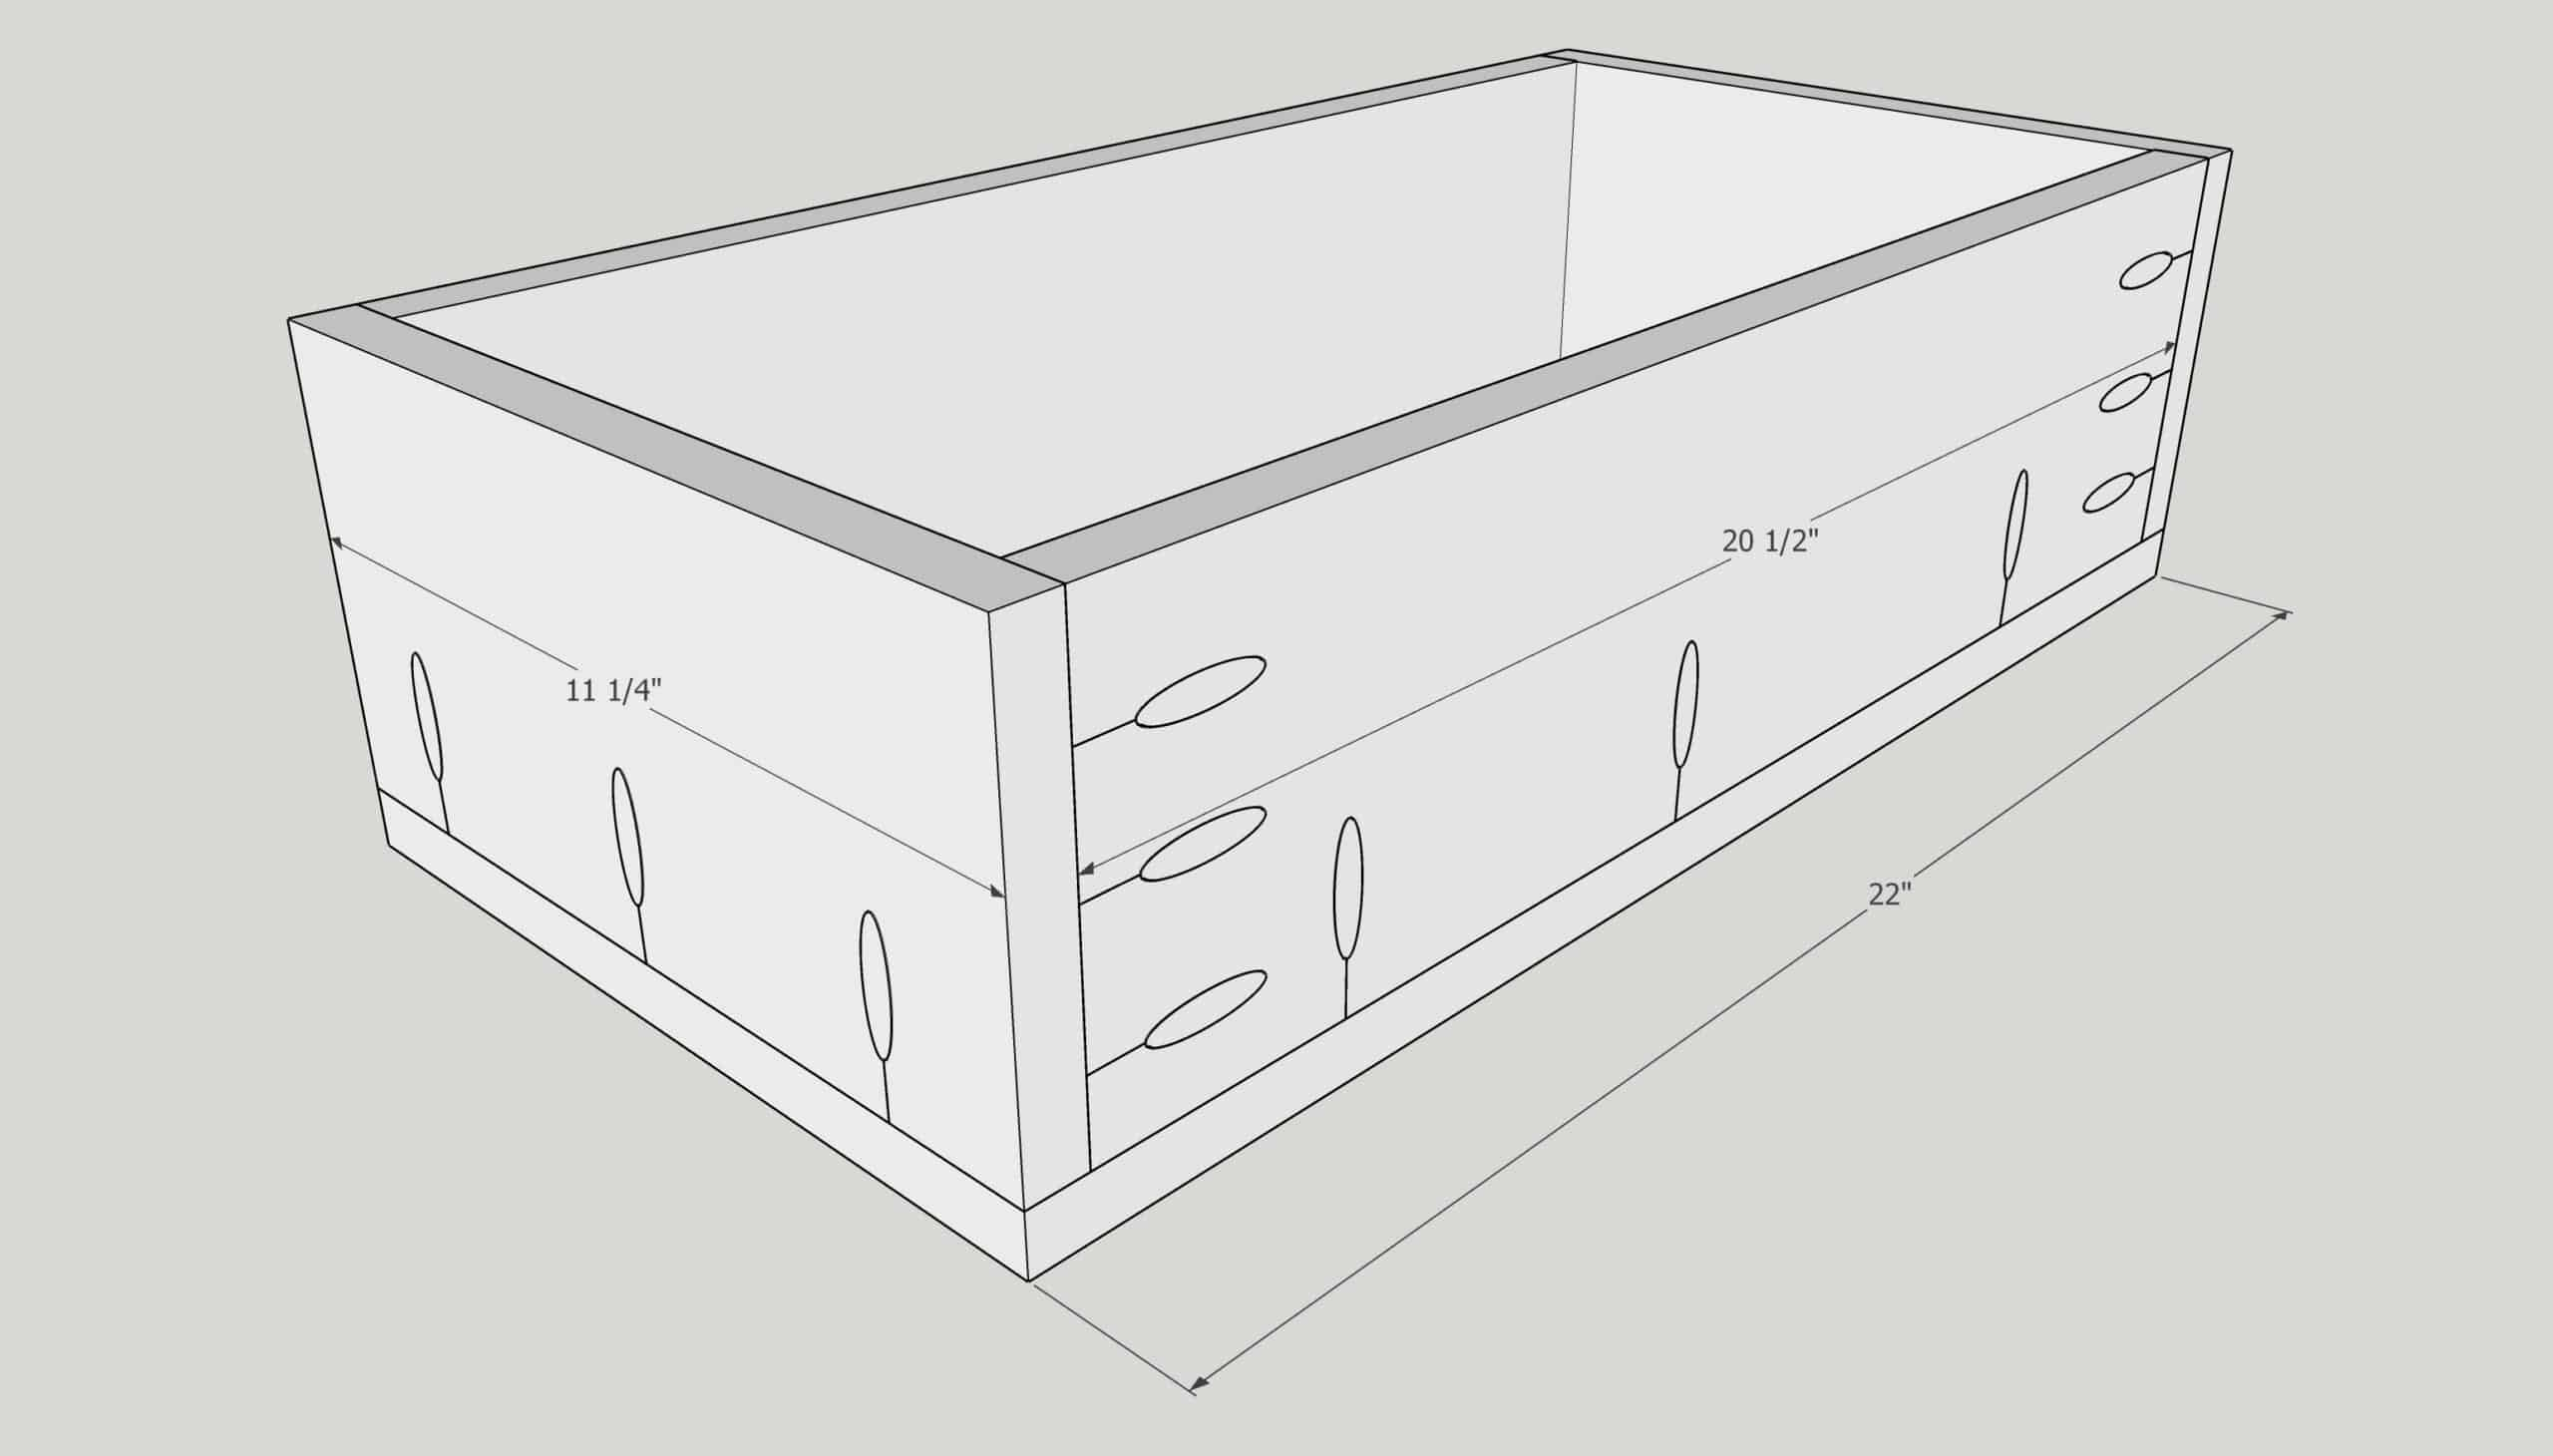 pocket holes in sides of drawer box for pull out trash can cabinet